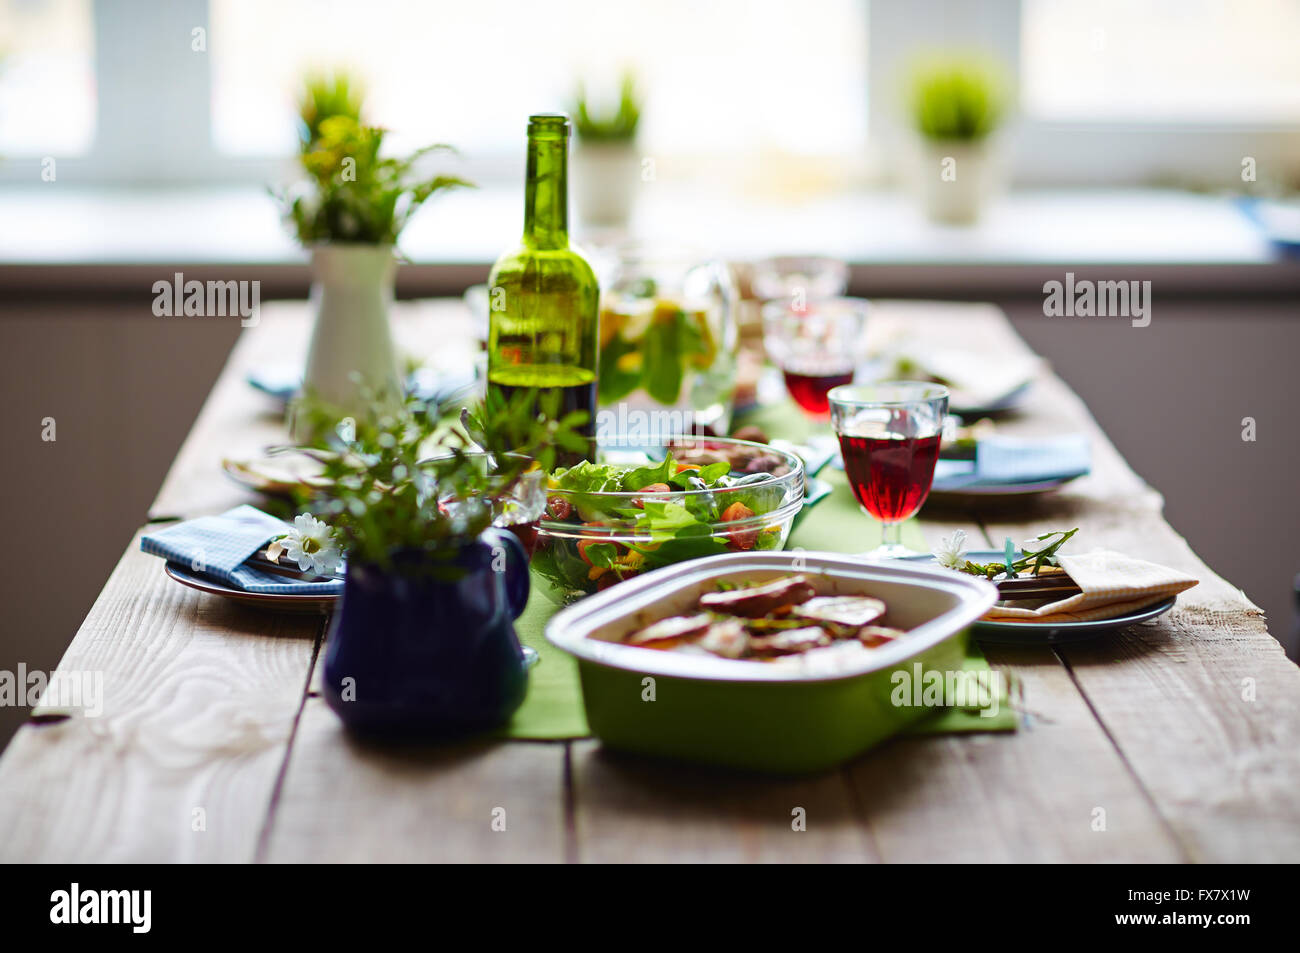 Served table - Stock Image